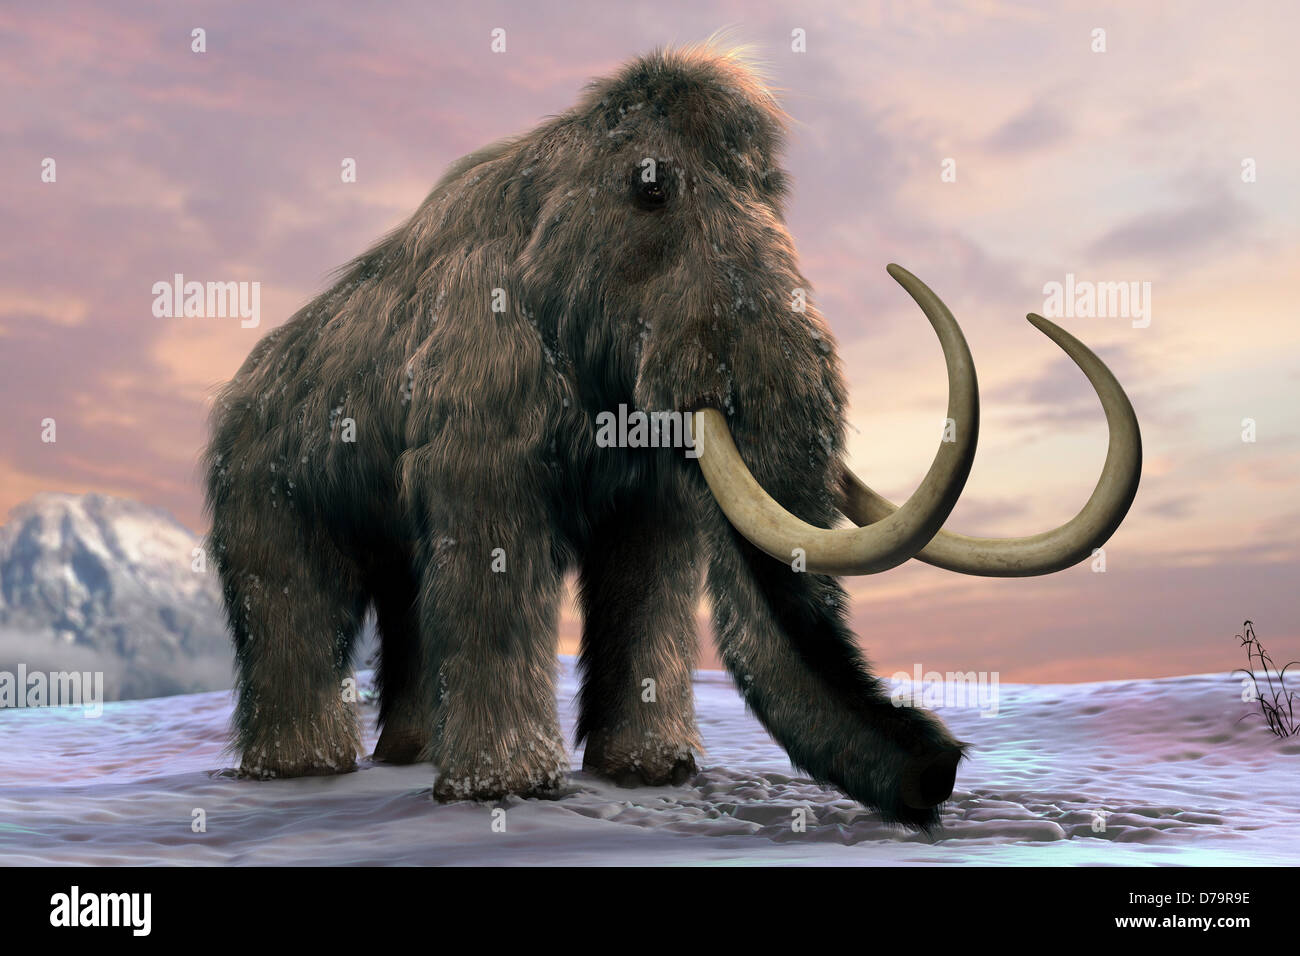 Wooly Mammoth Stock Photo